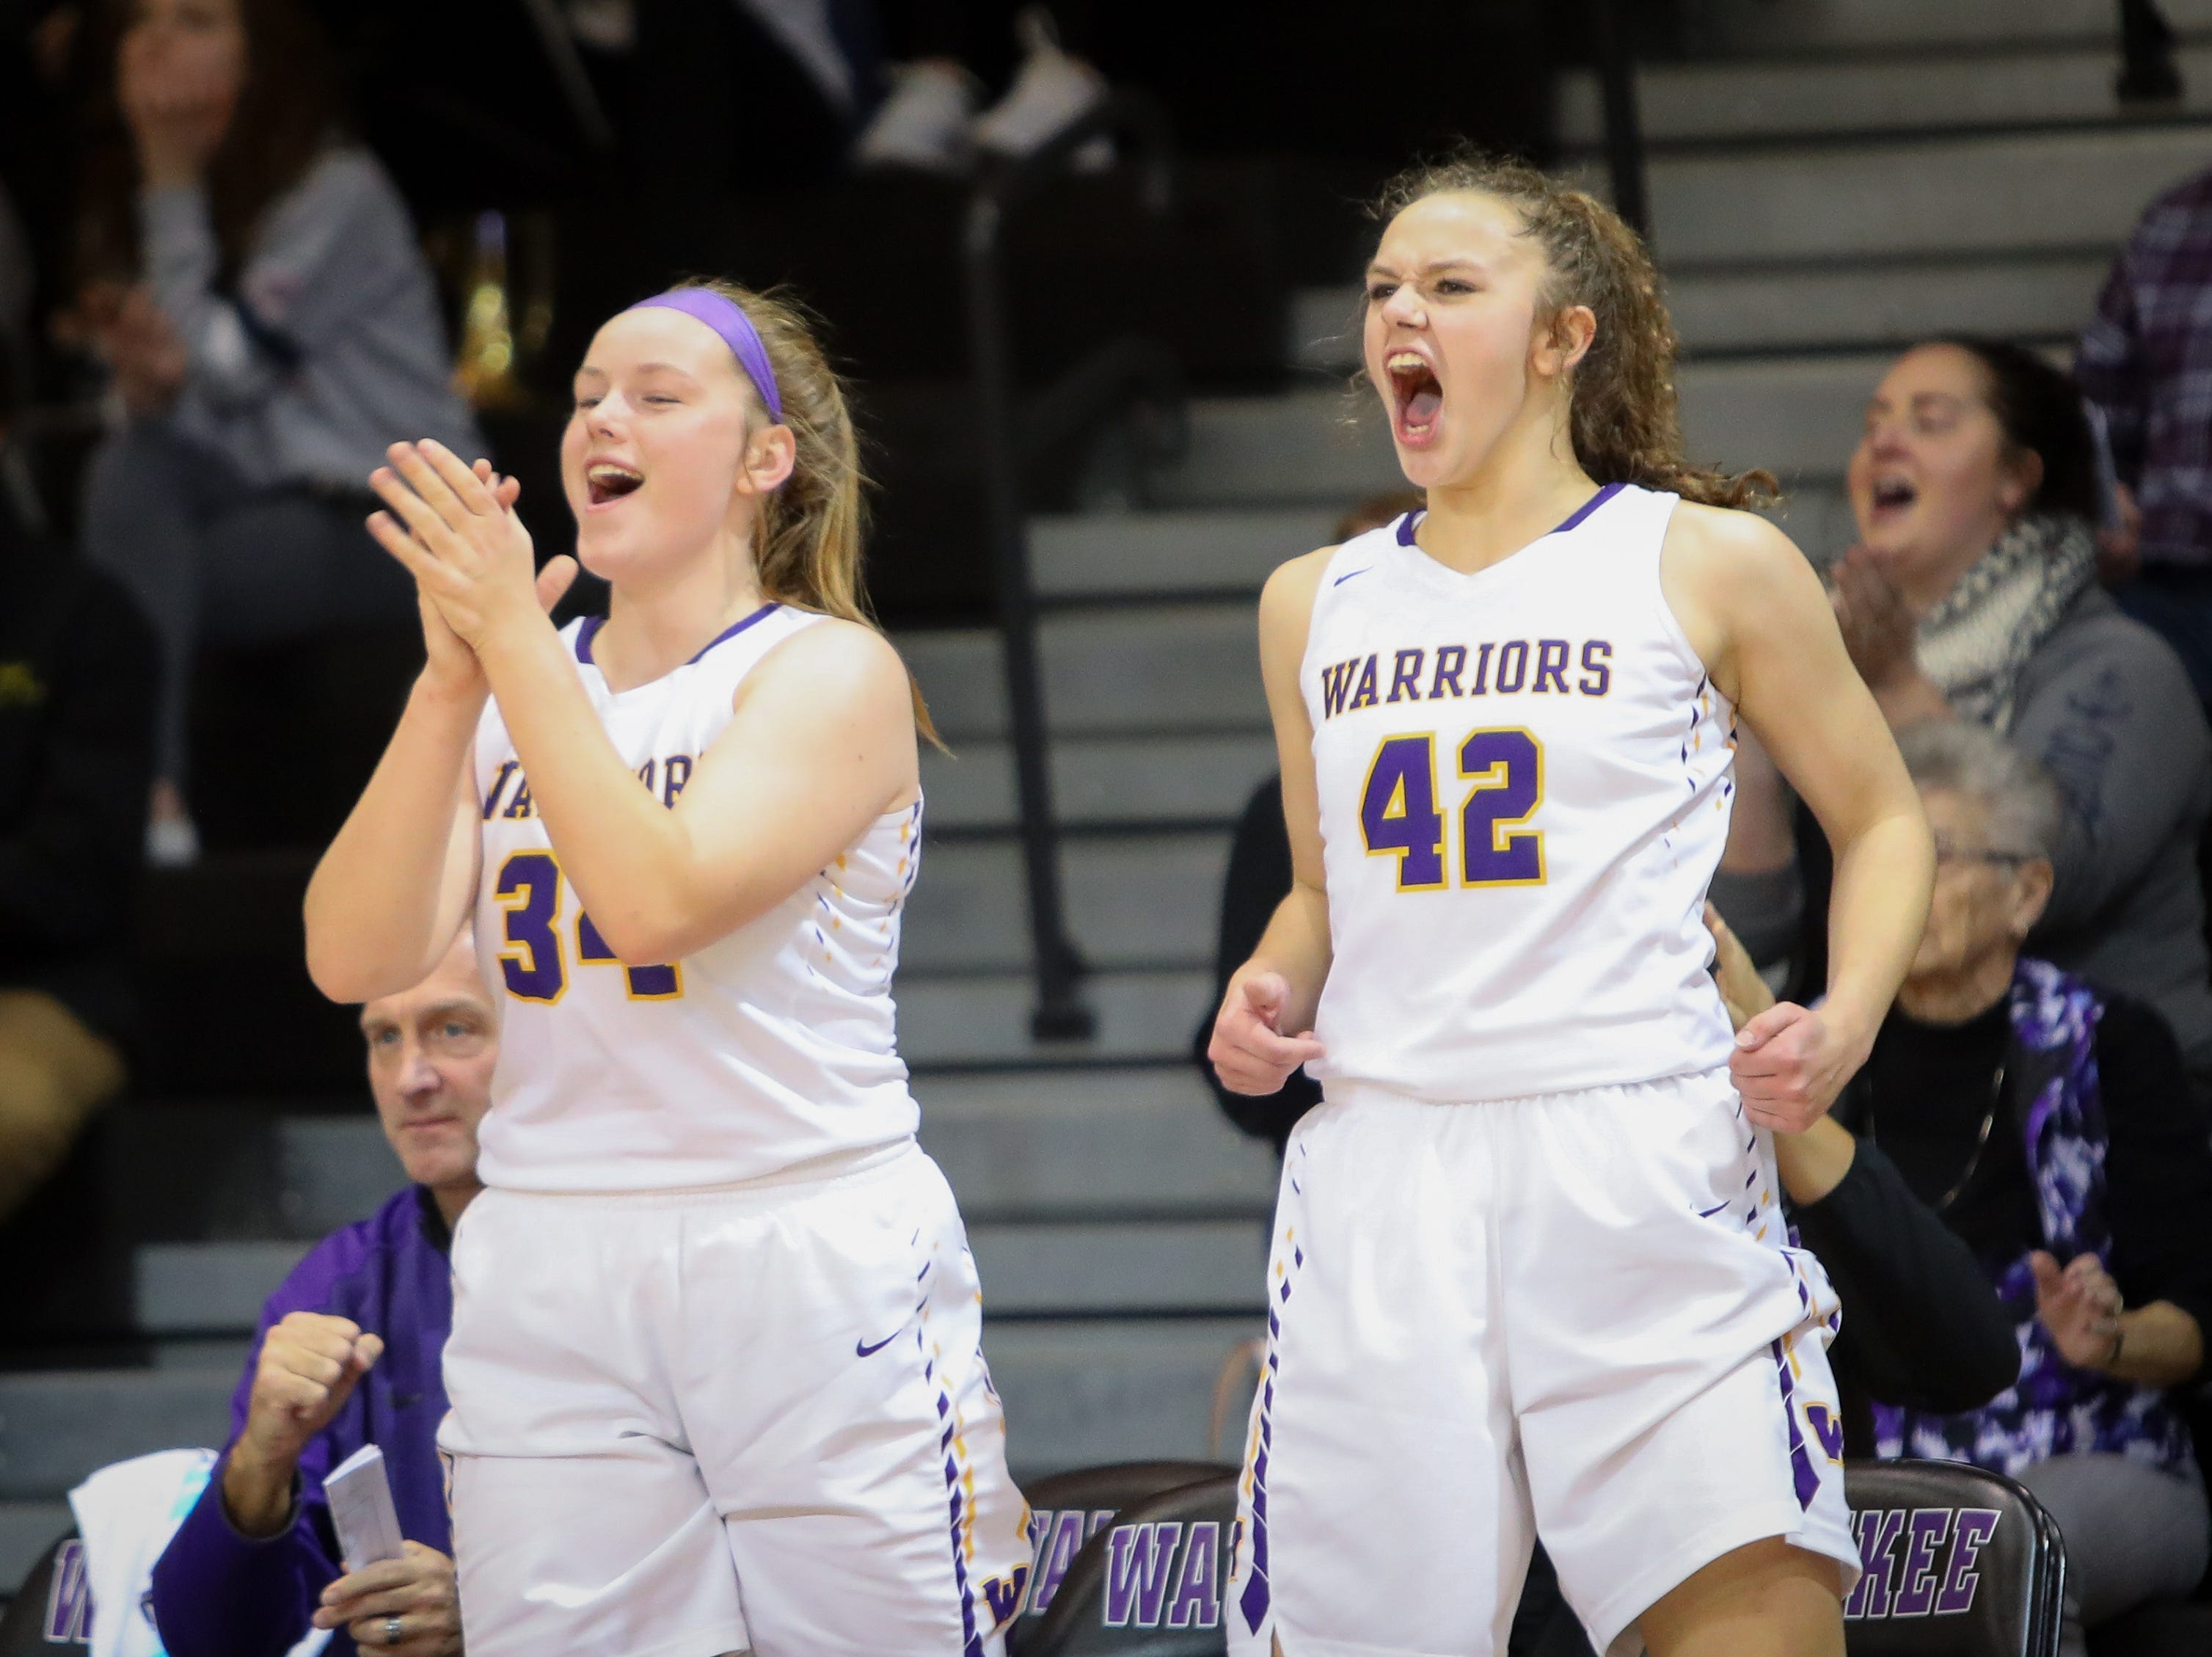 Waukee sophomores Megan Earney and Taryn Reitsma cheer on their teammates during a girls high school basketball game between the Valley Tigers and the Waukee Warriors at Waukee High School on Dec. 14, 2018 in Waukee, Iowa.